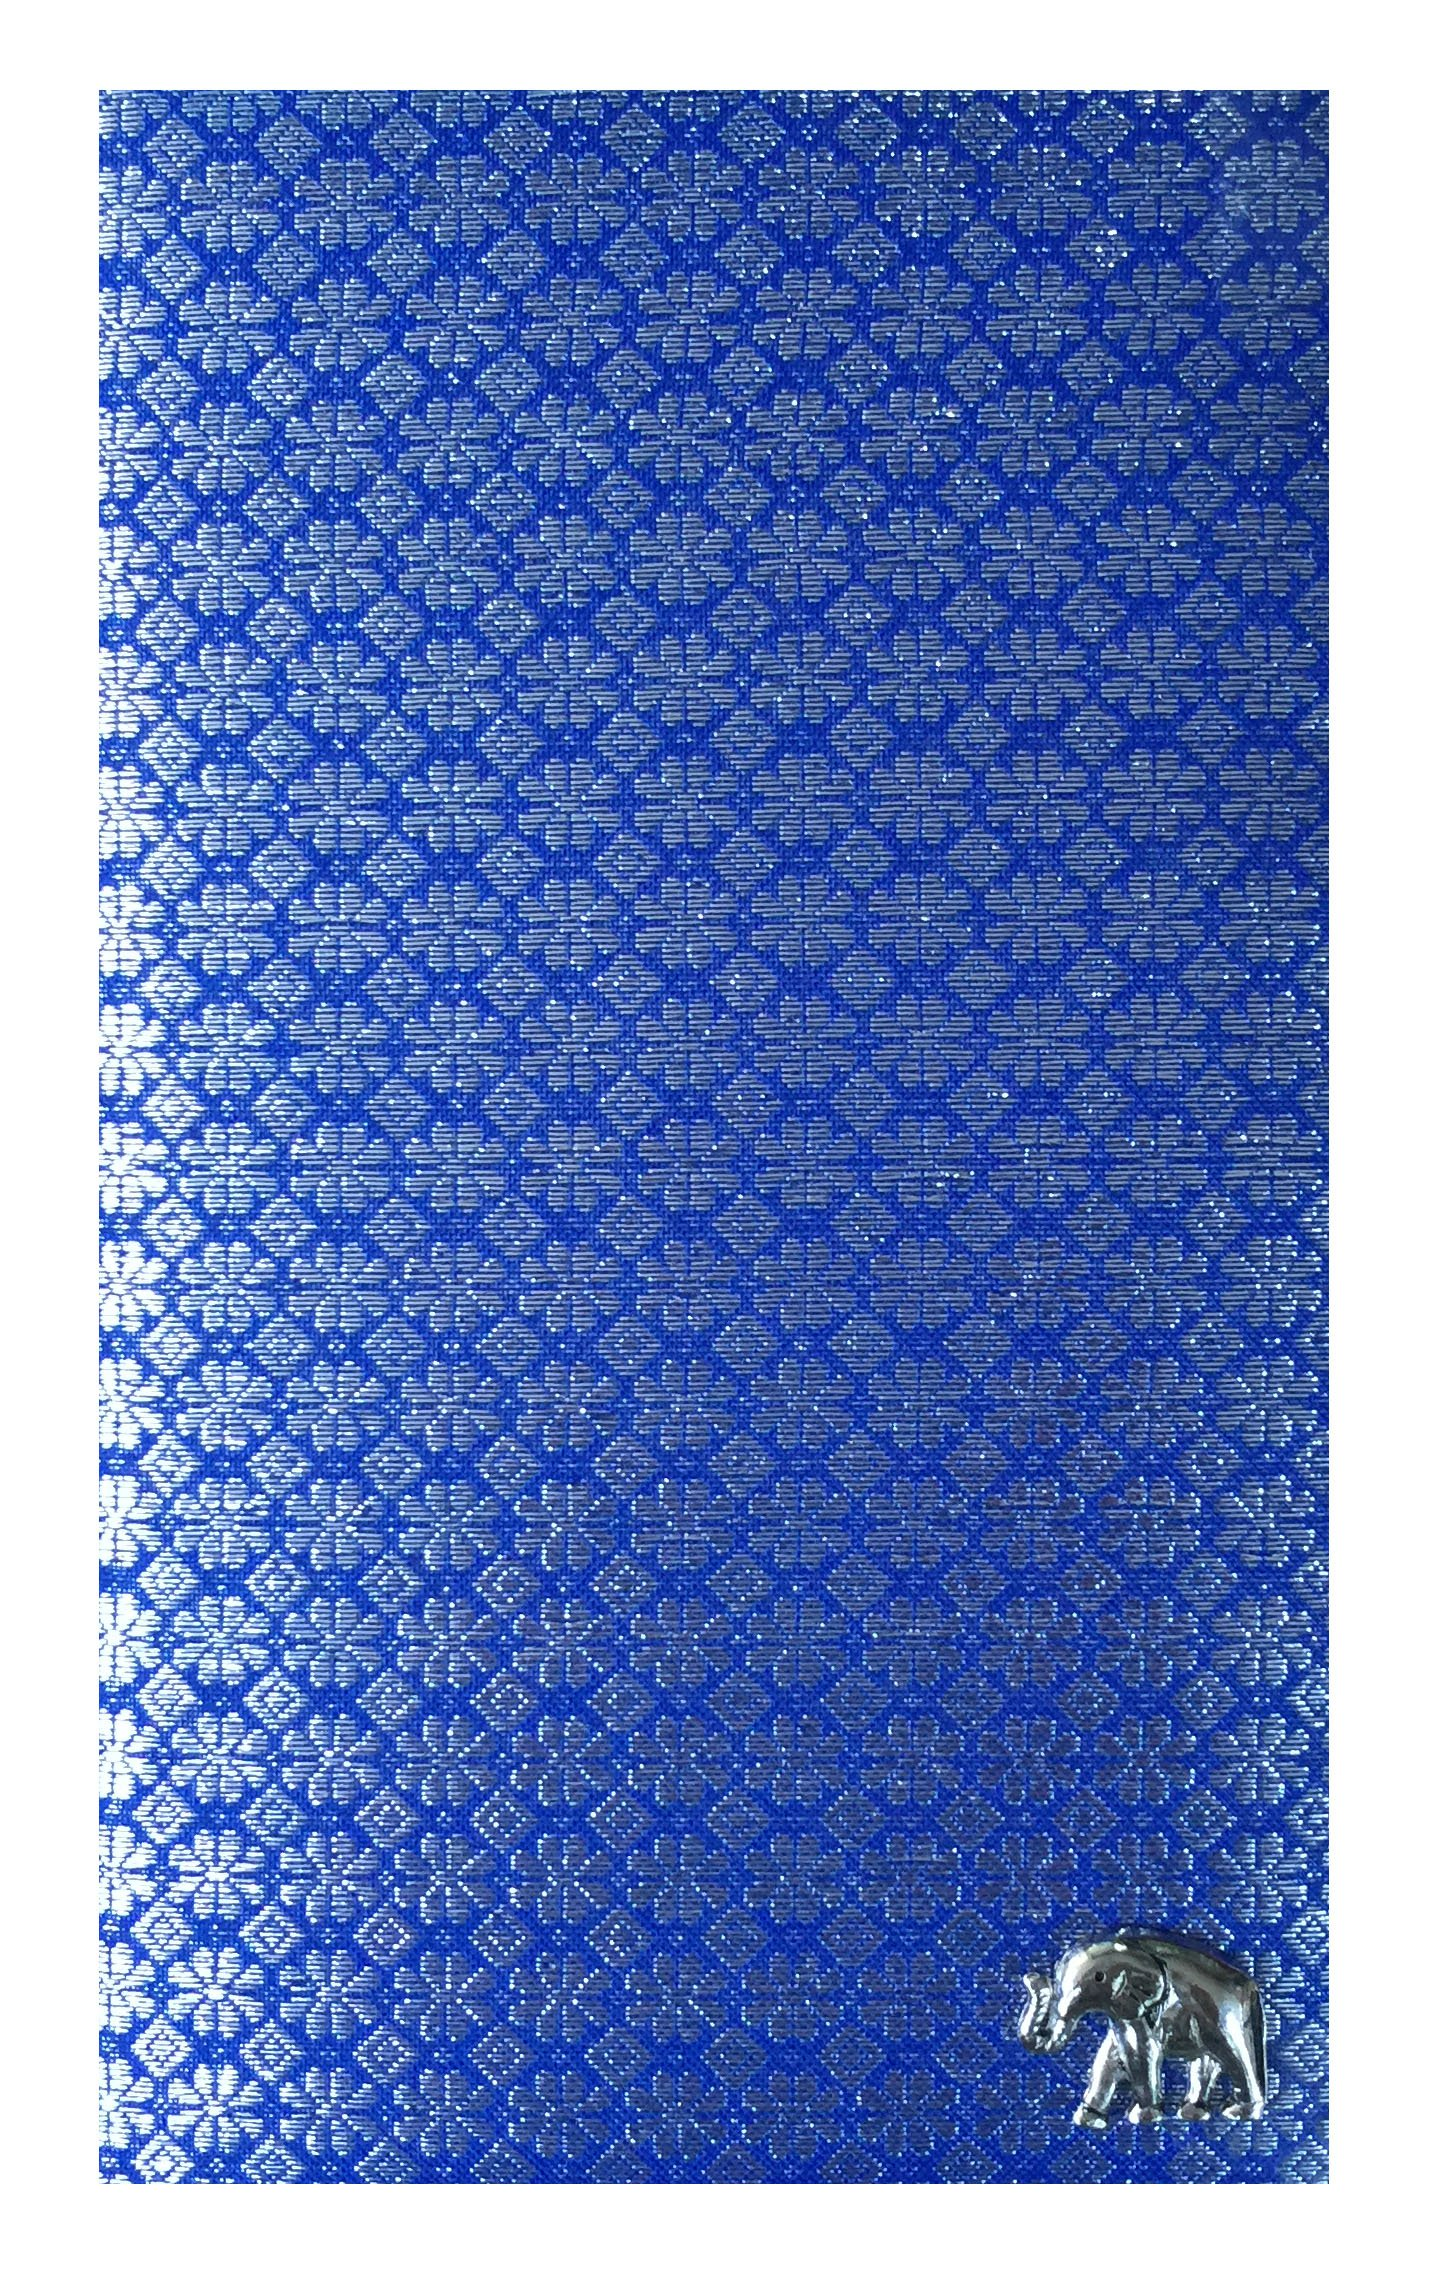 Blue Thai Fabric Check Presenter, Check Book Holder for Restaurant, Check Pad Holder, Waitstaff Organizer, Server Book for Waitress with Money Pocket, Waiters Wallet. U